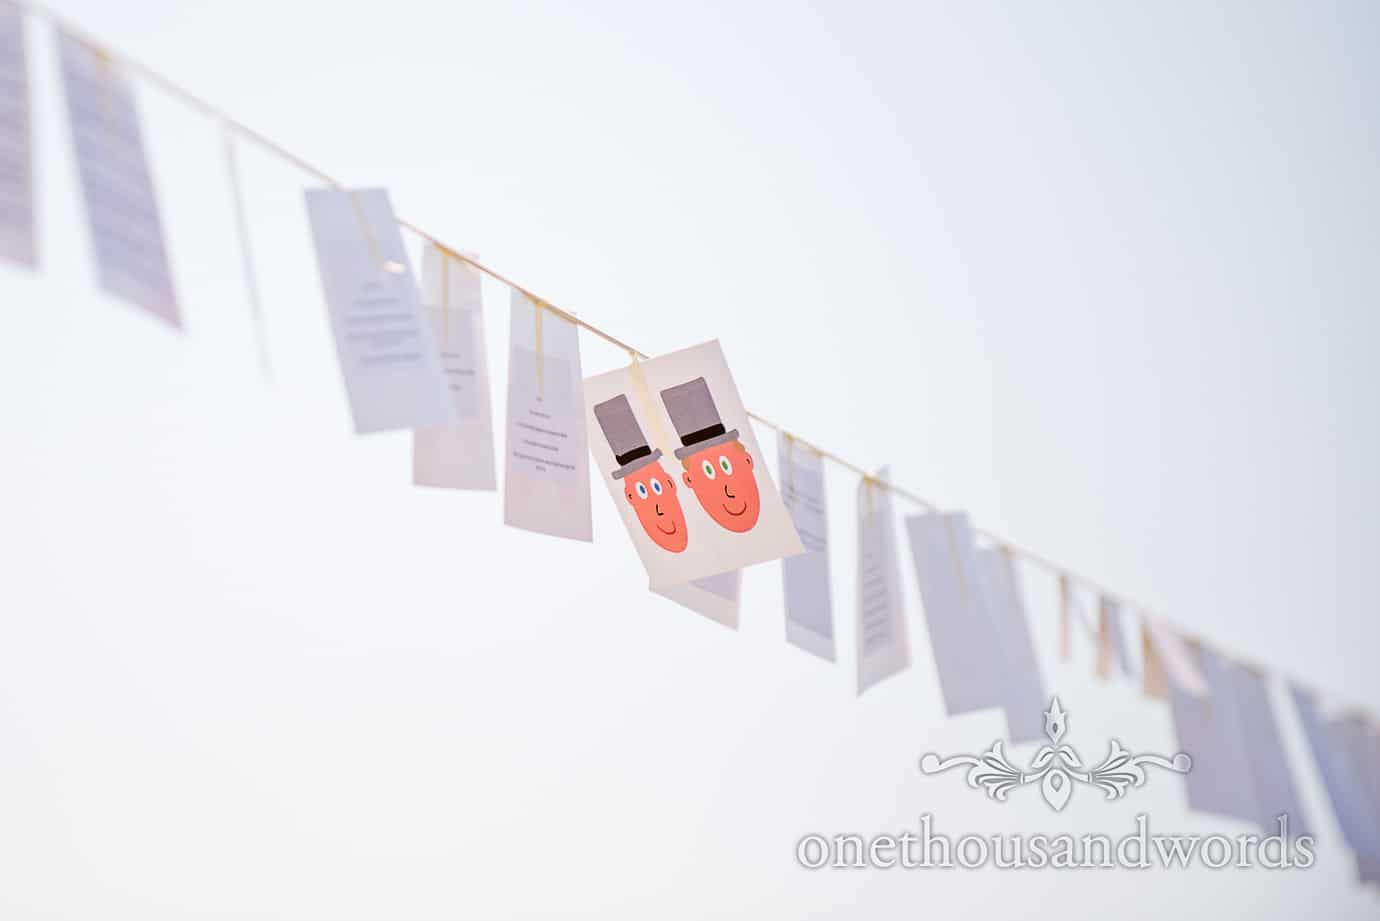 Swanage Wedding Photographers capture wedding speech cards hanging on washing line